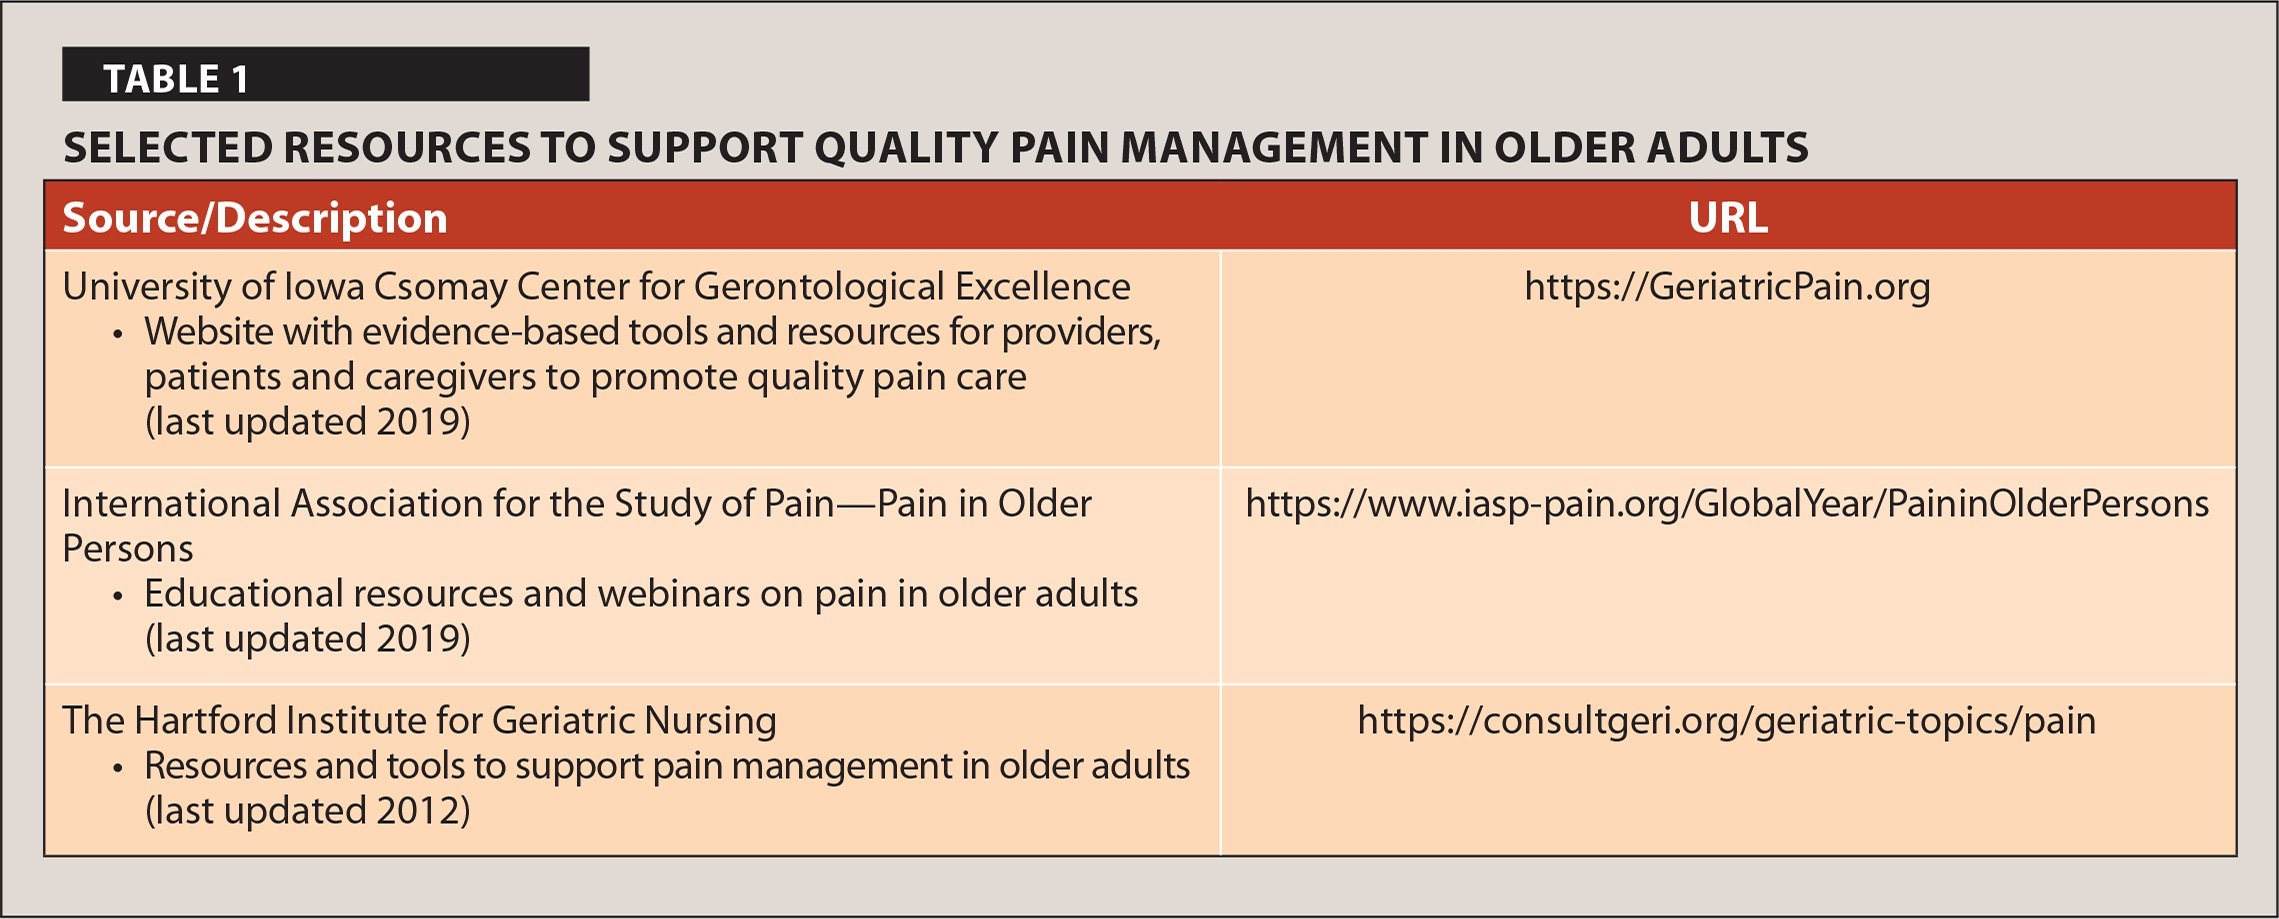 Selected Resources to Support Quality Pain Management in Older Adults